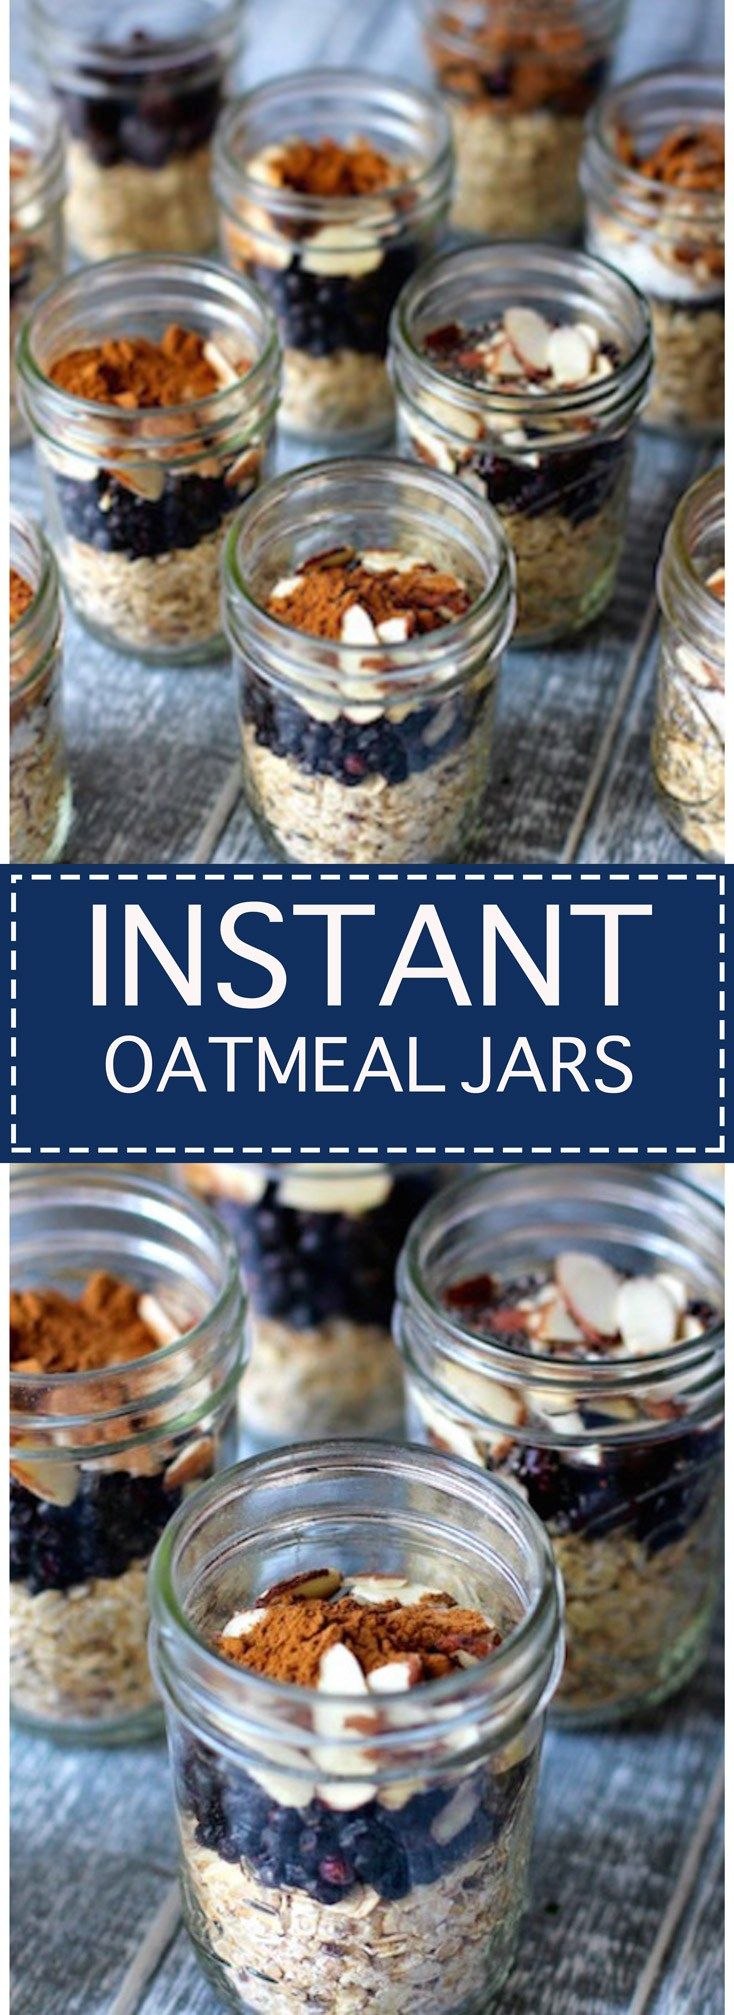 Store bought oatmeal packets are full of sugar and additives. Make your own instant oatmeal jars instead! Simple. Customizable. Yummy!